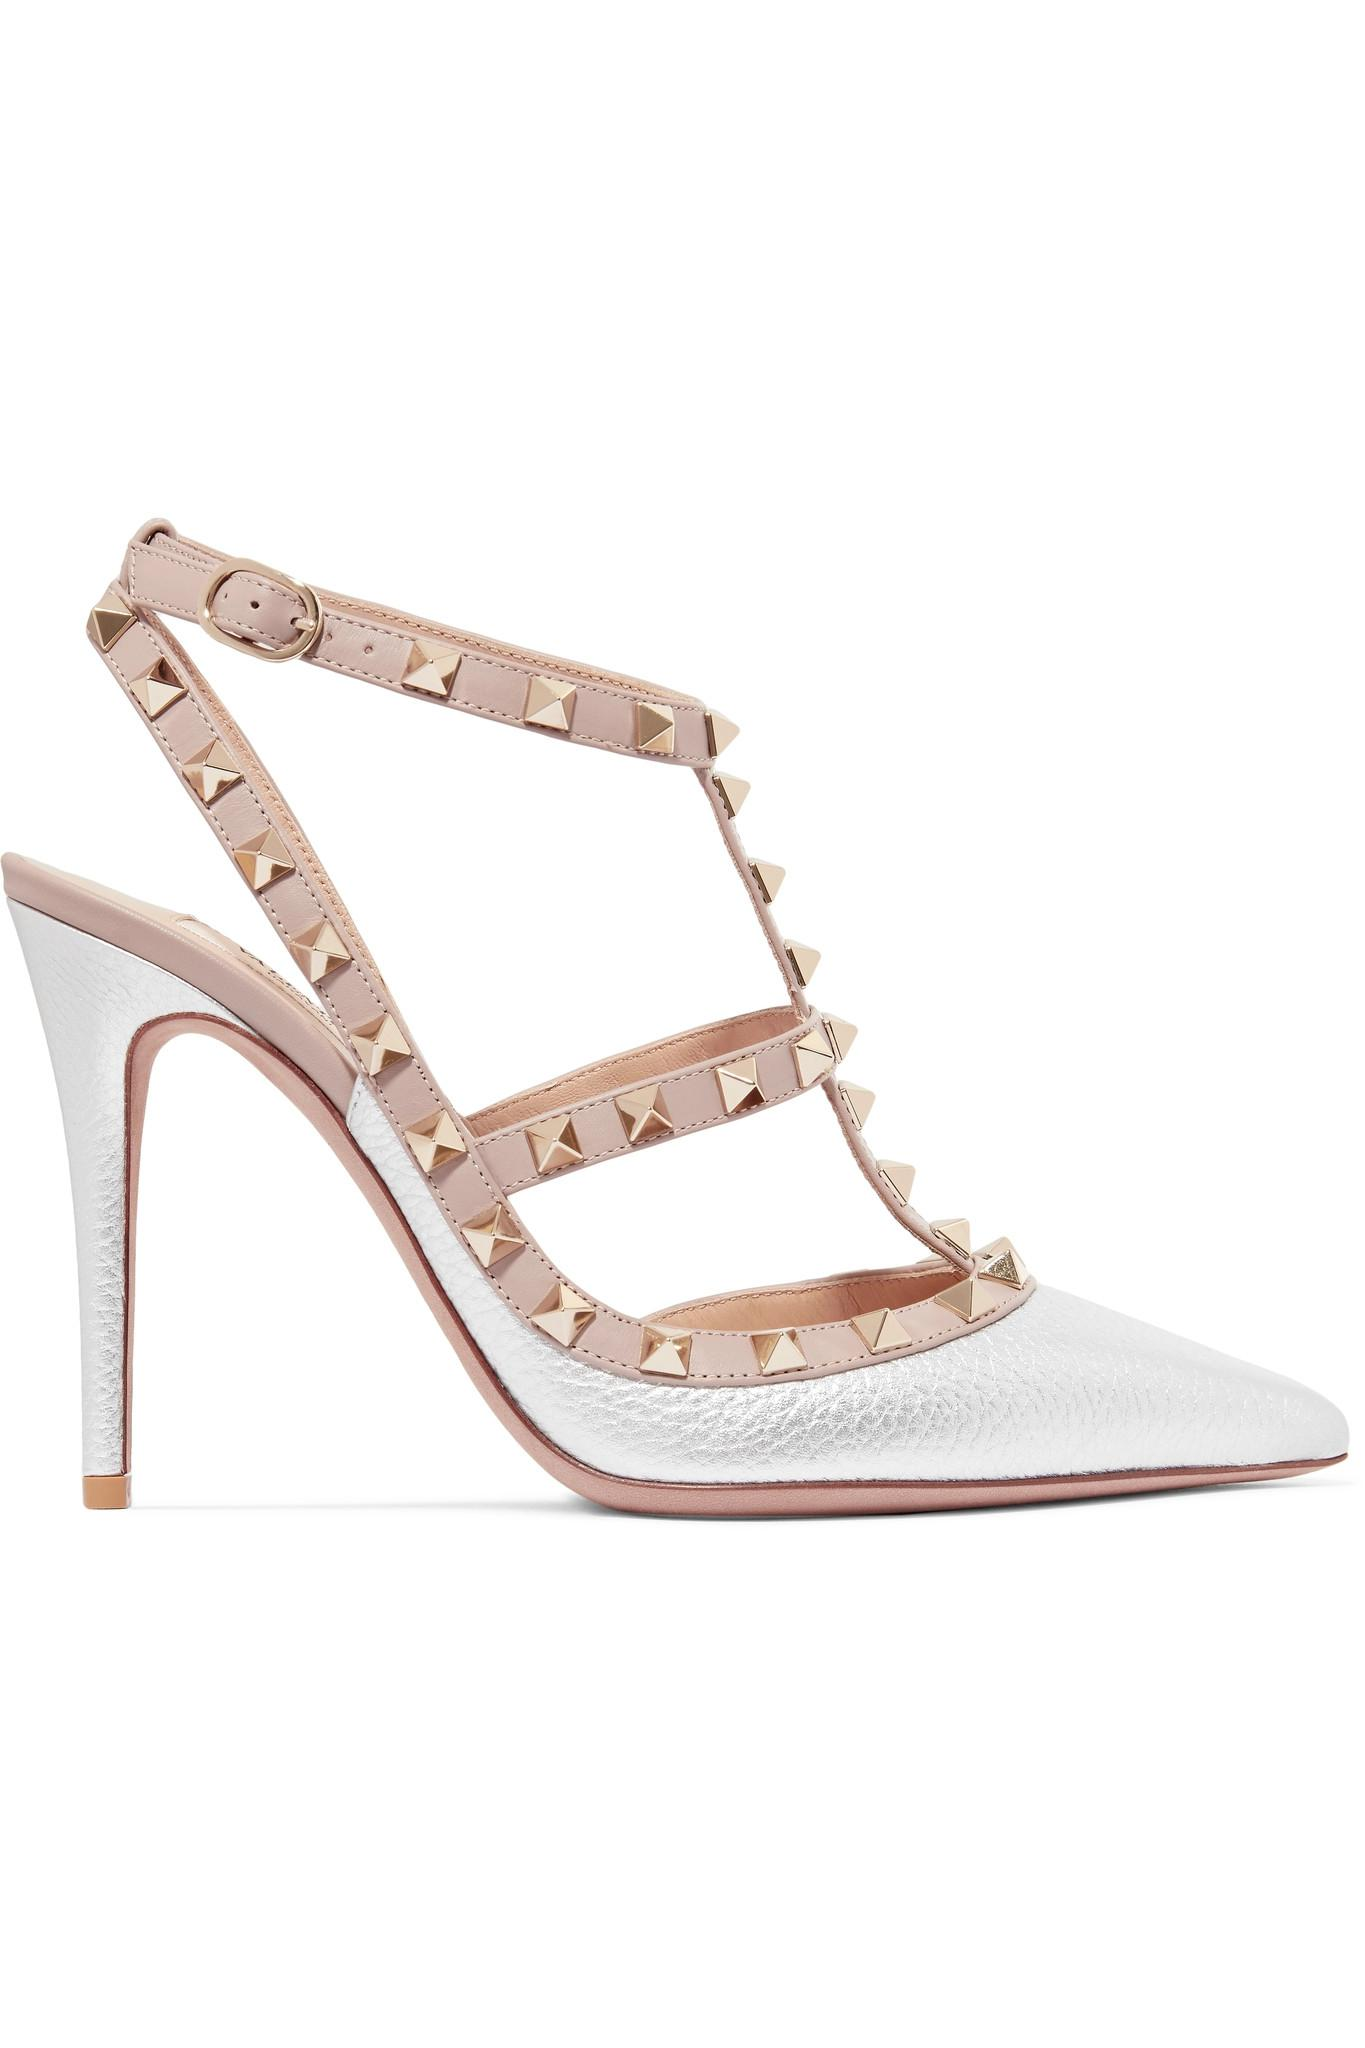 Valentino Garavani The Rockstud Textured-leather Pumps - Crimson Valentino e2V2wXj